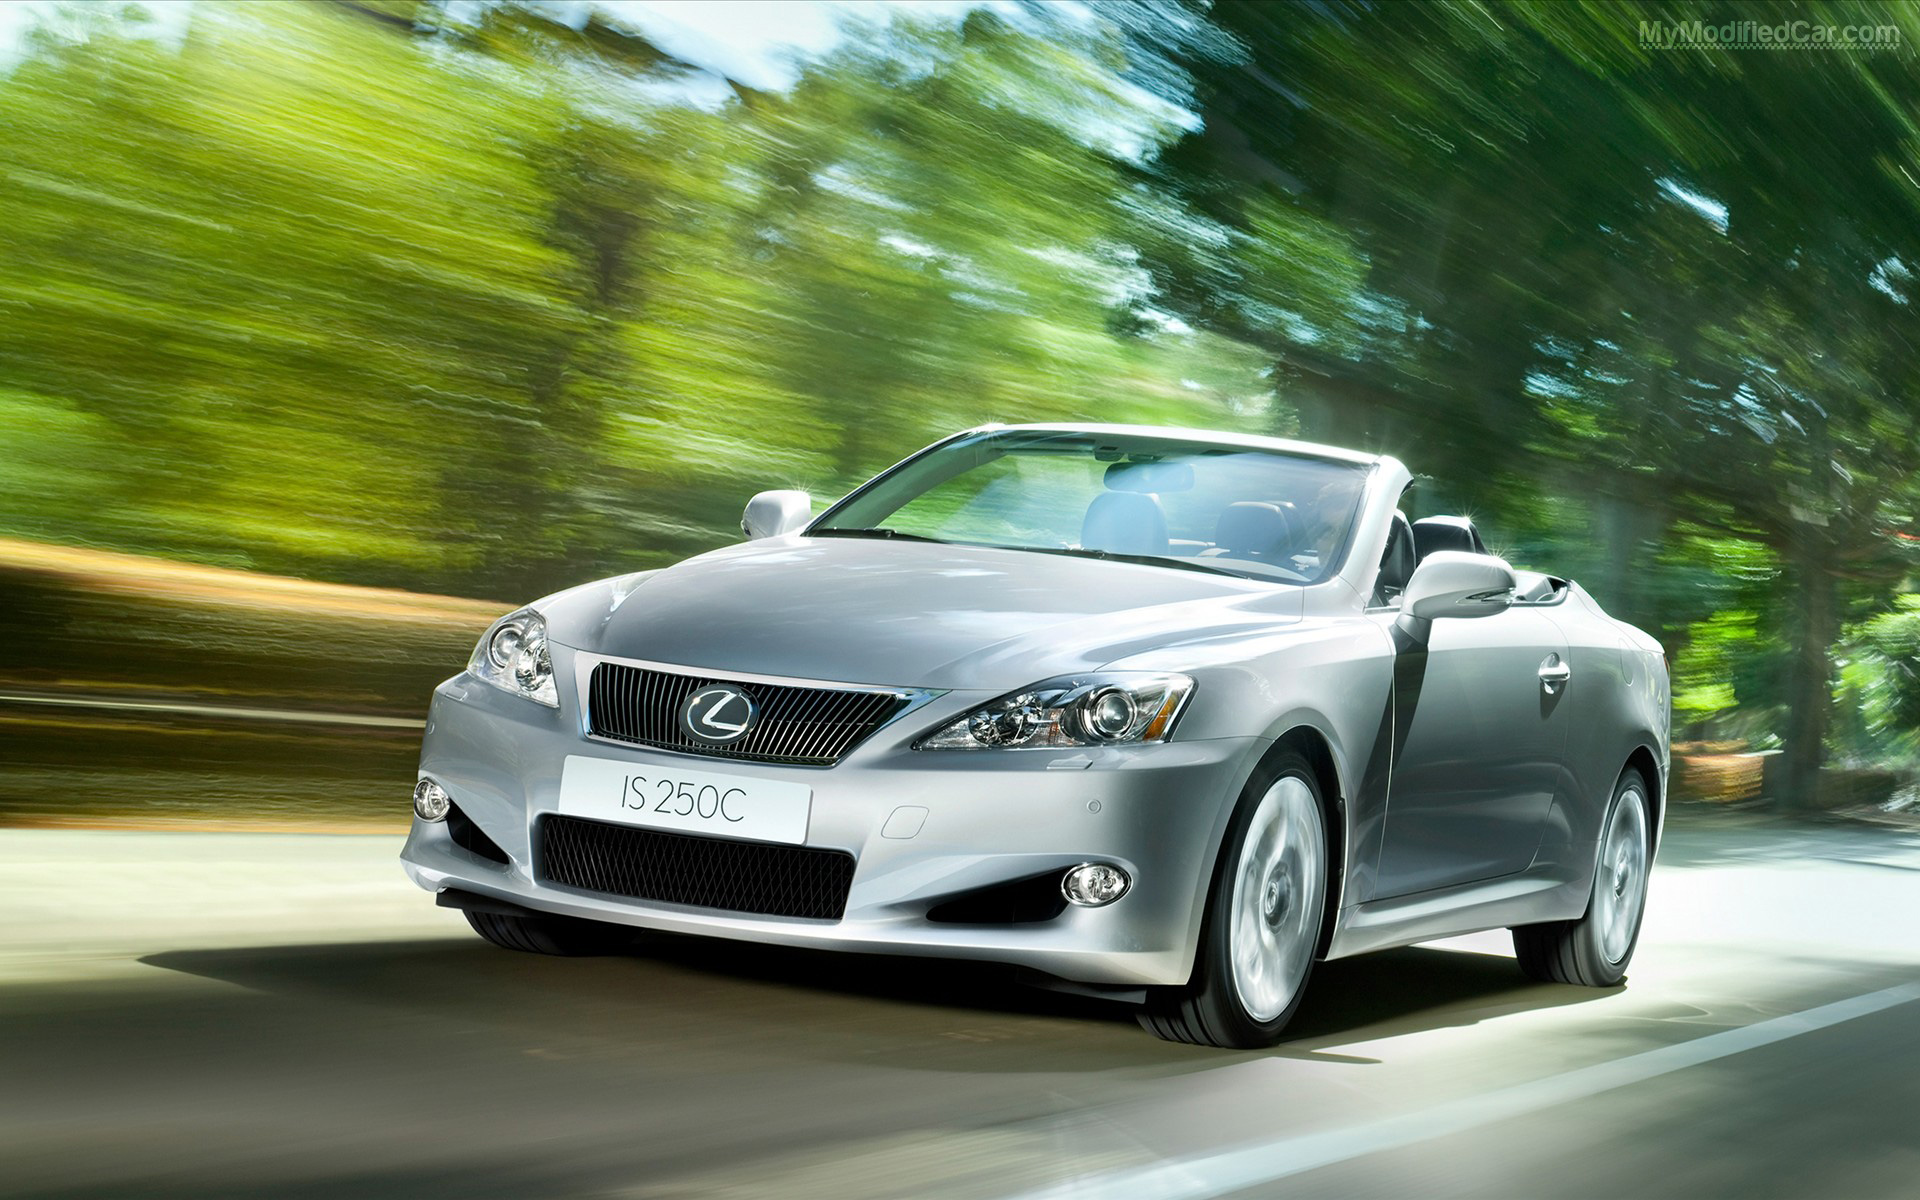 2012 lexus is 250 c information and photos momentcar. Black Bedroom Furniture Sets. Home Design Ideas